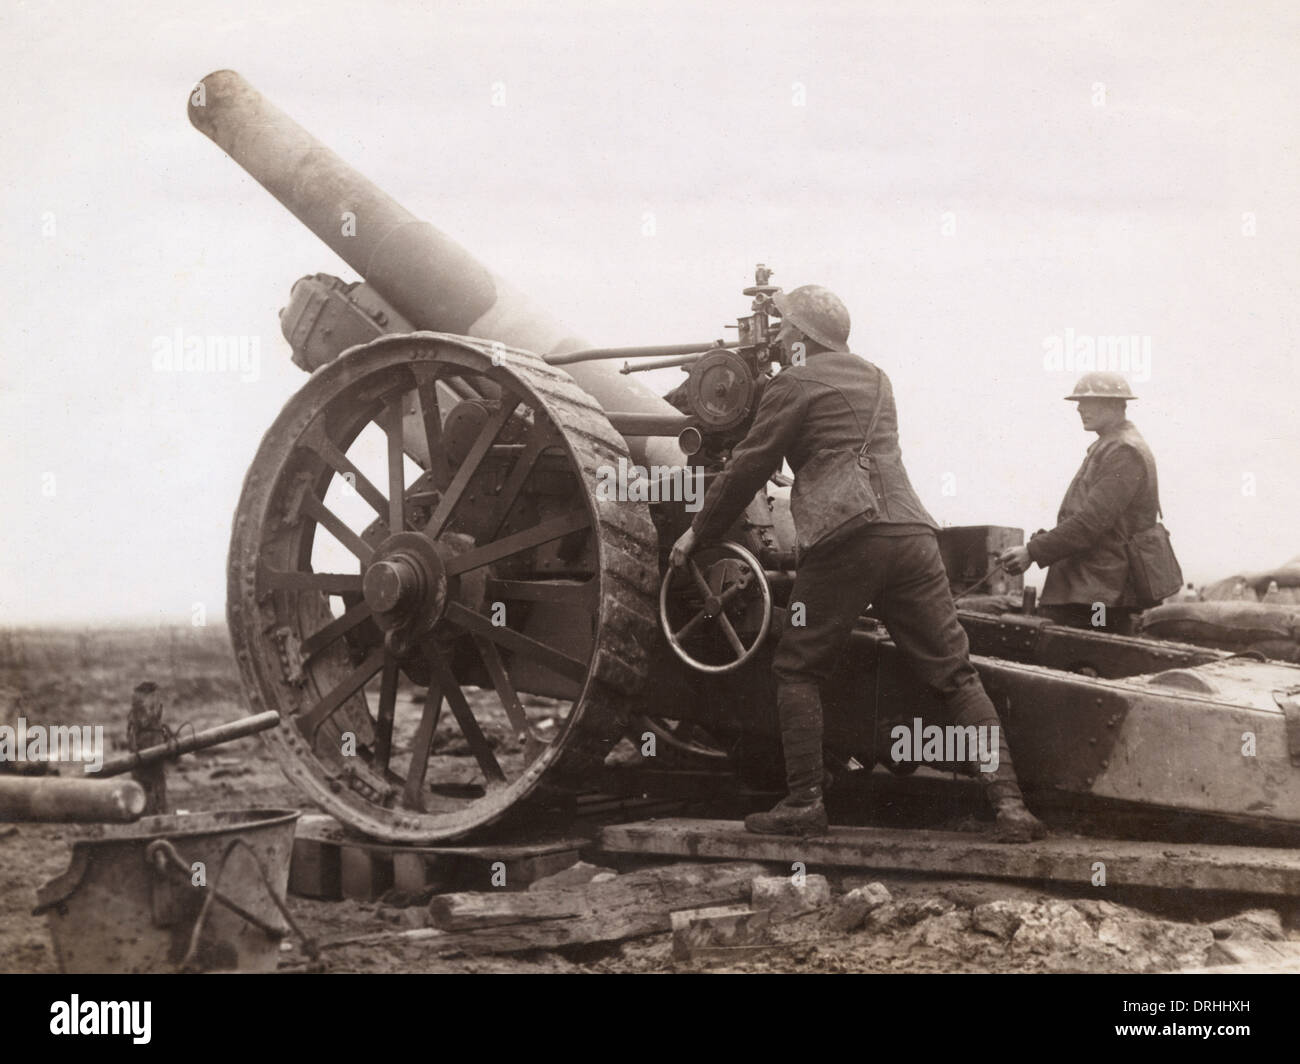 Sighting a British 8 inch Howitzer, France, WW1 - Stock Image